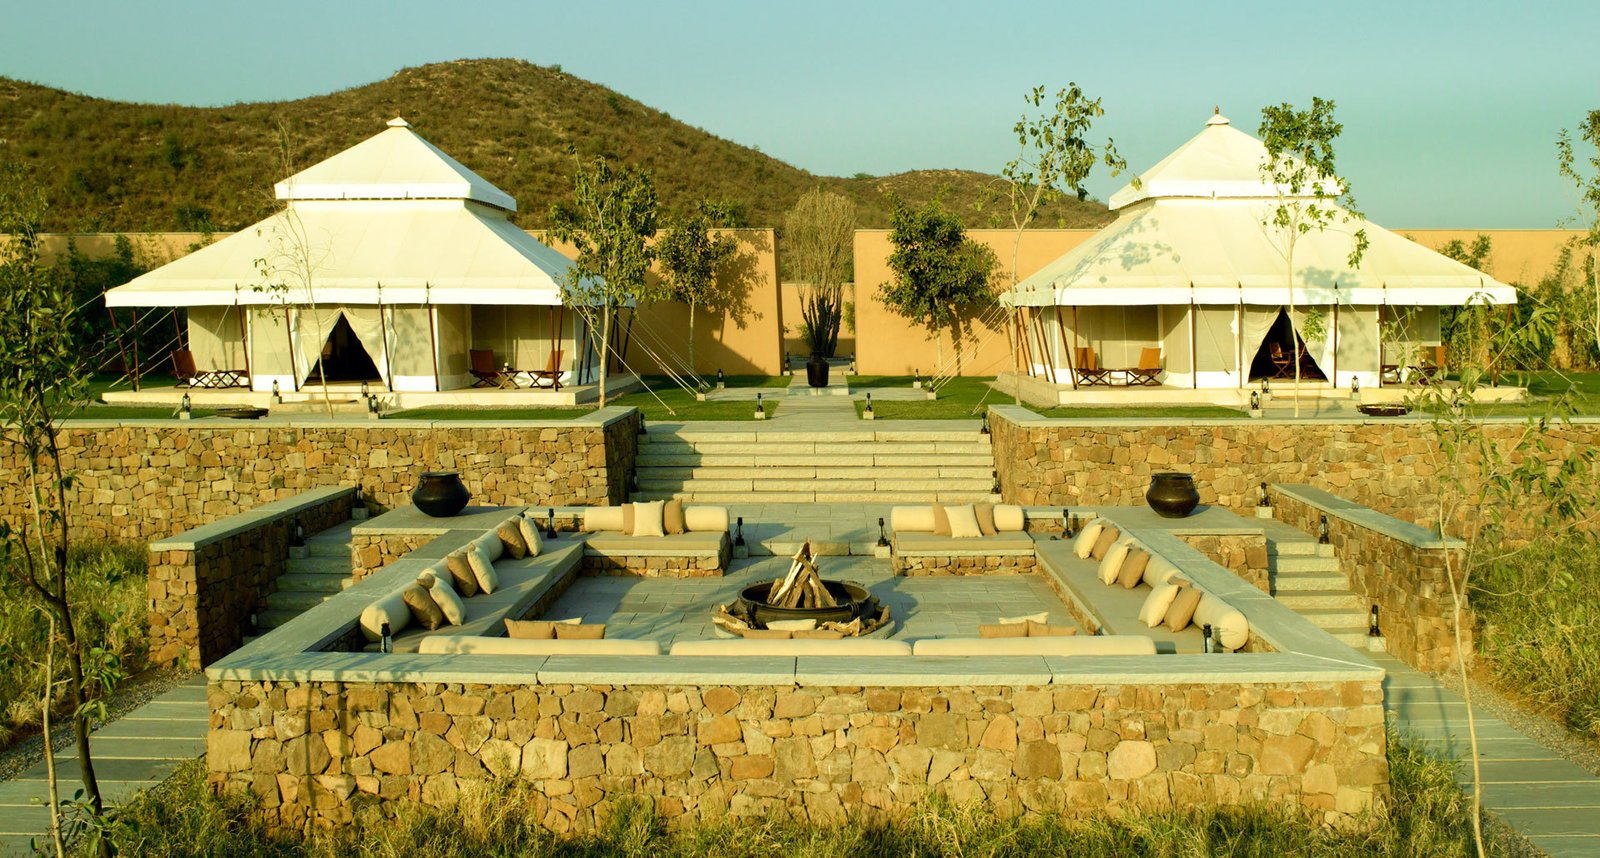 Outdoor, Trees, and Walkways Aman-i-Khás in Ranthambhore, India  Photo 2 of 12 in 12 Epic Hotels That Take Glamping to the Next Level from Aman-i-Khás